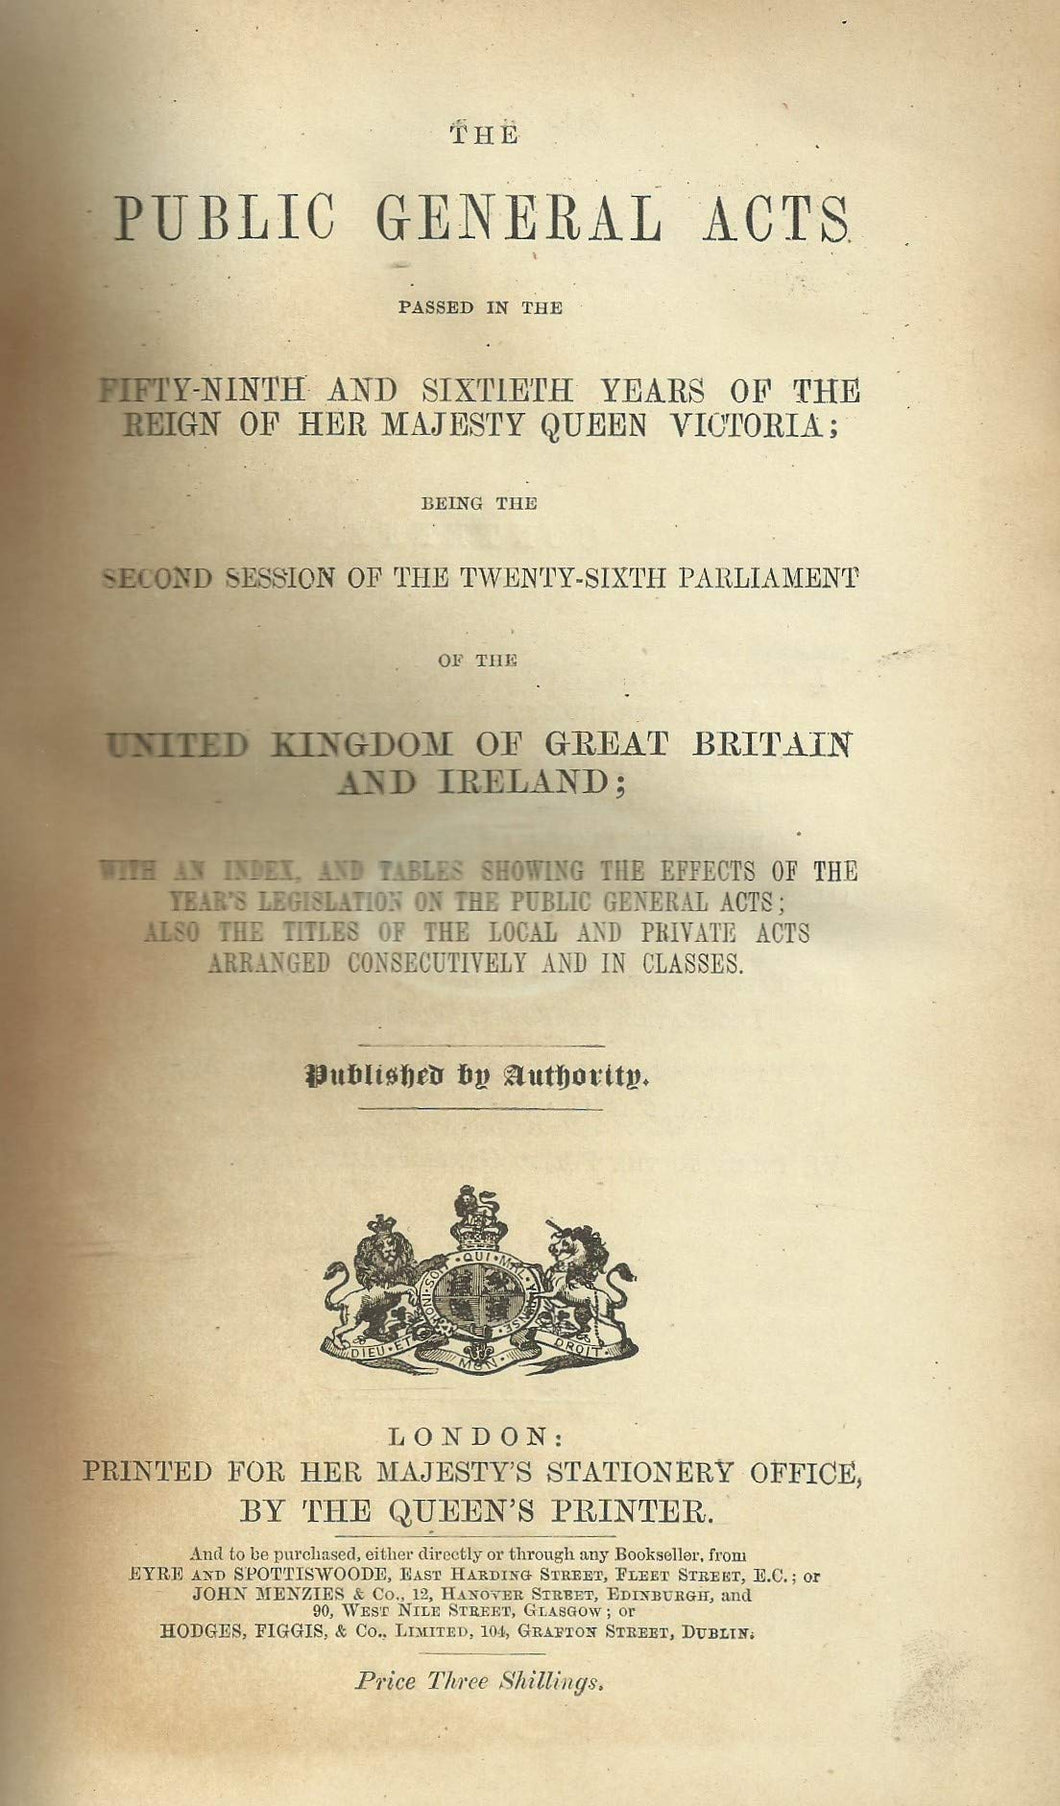 The Public General Acts 1896 - 59 and 60 Vict